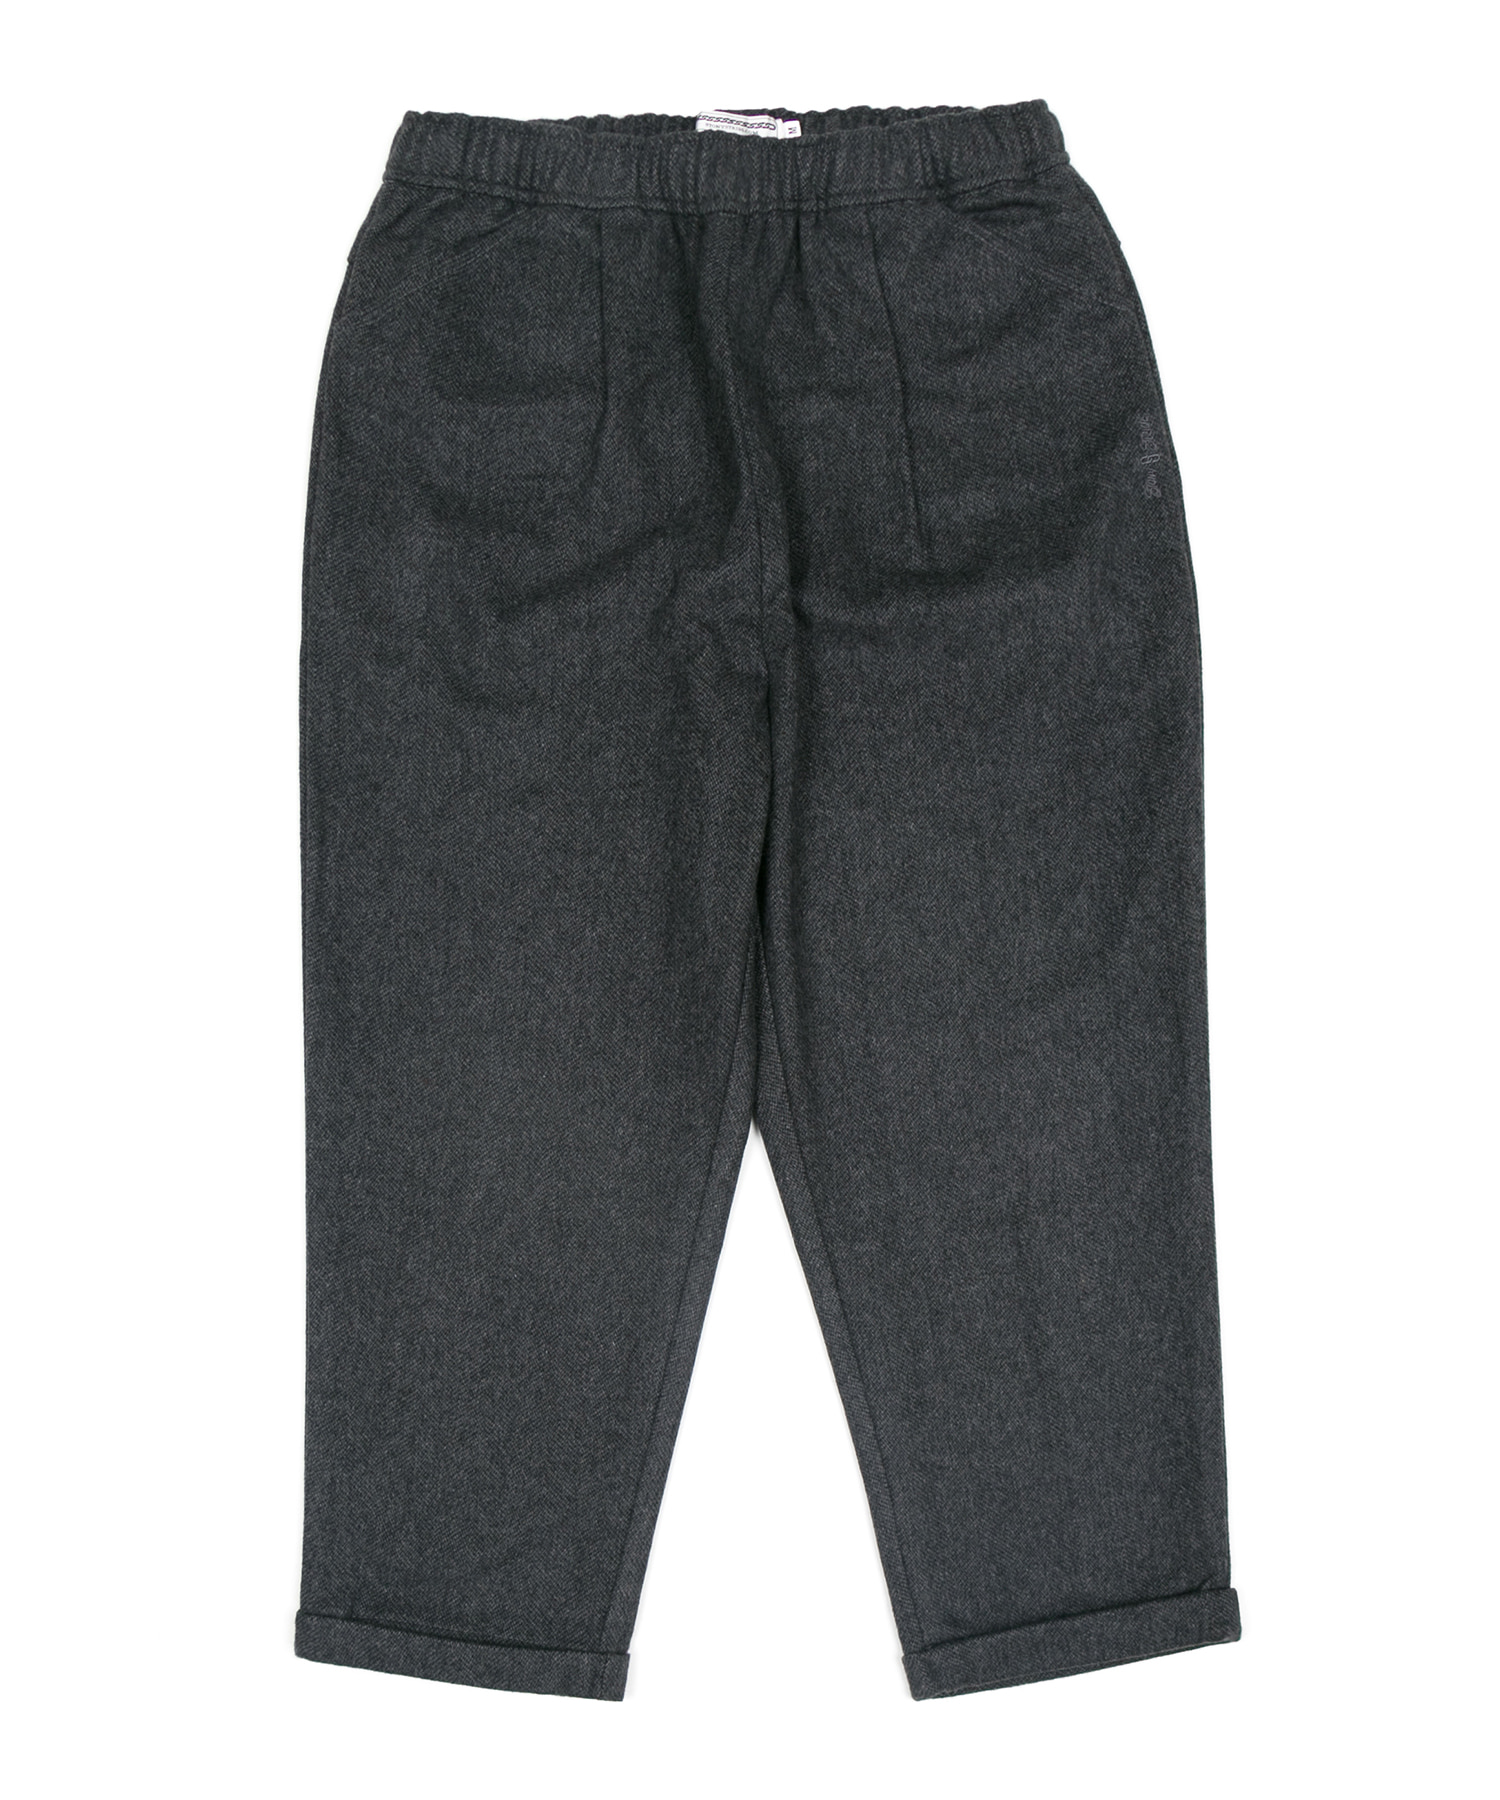 WIDE SEMI BAGGY SLACKS